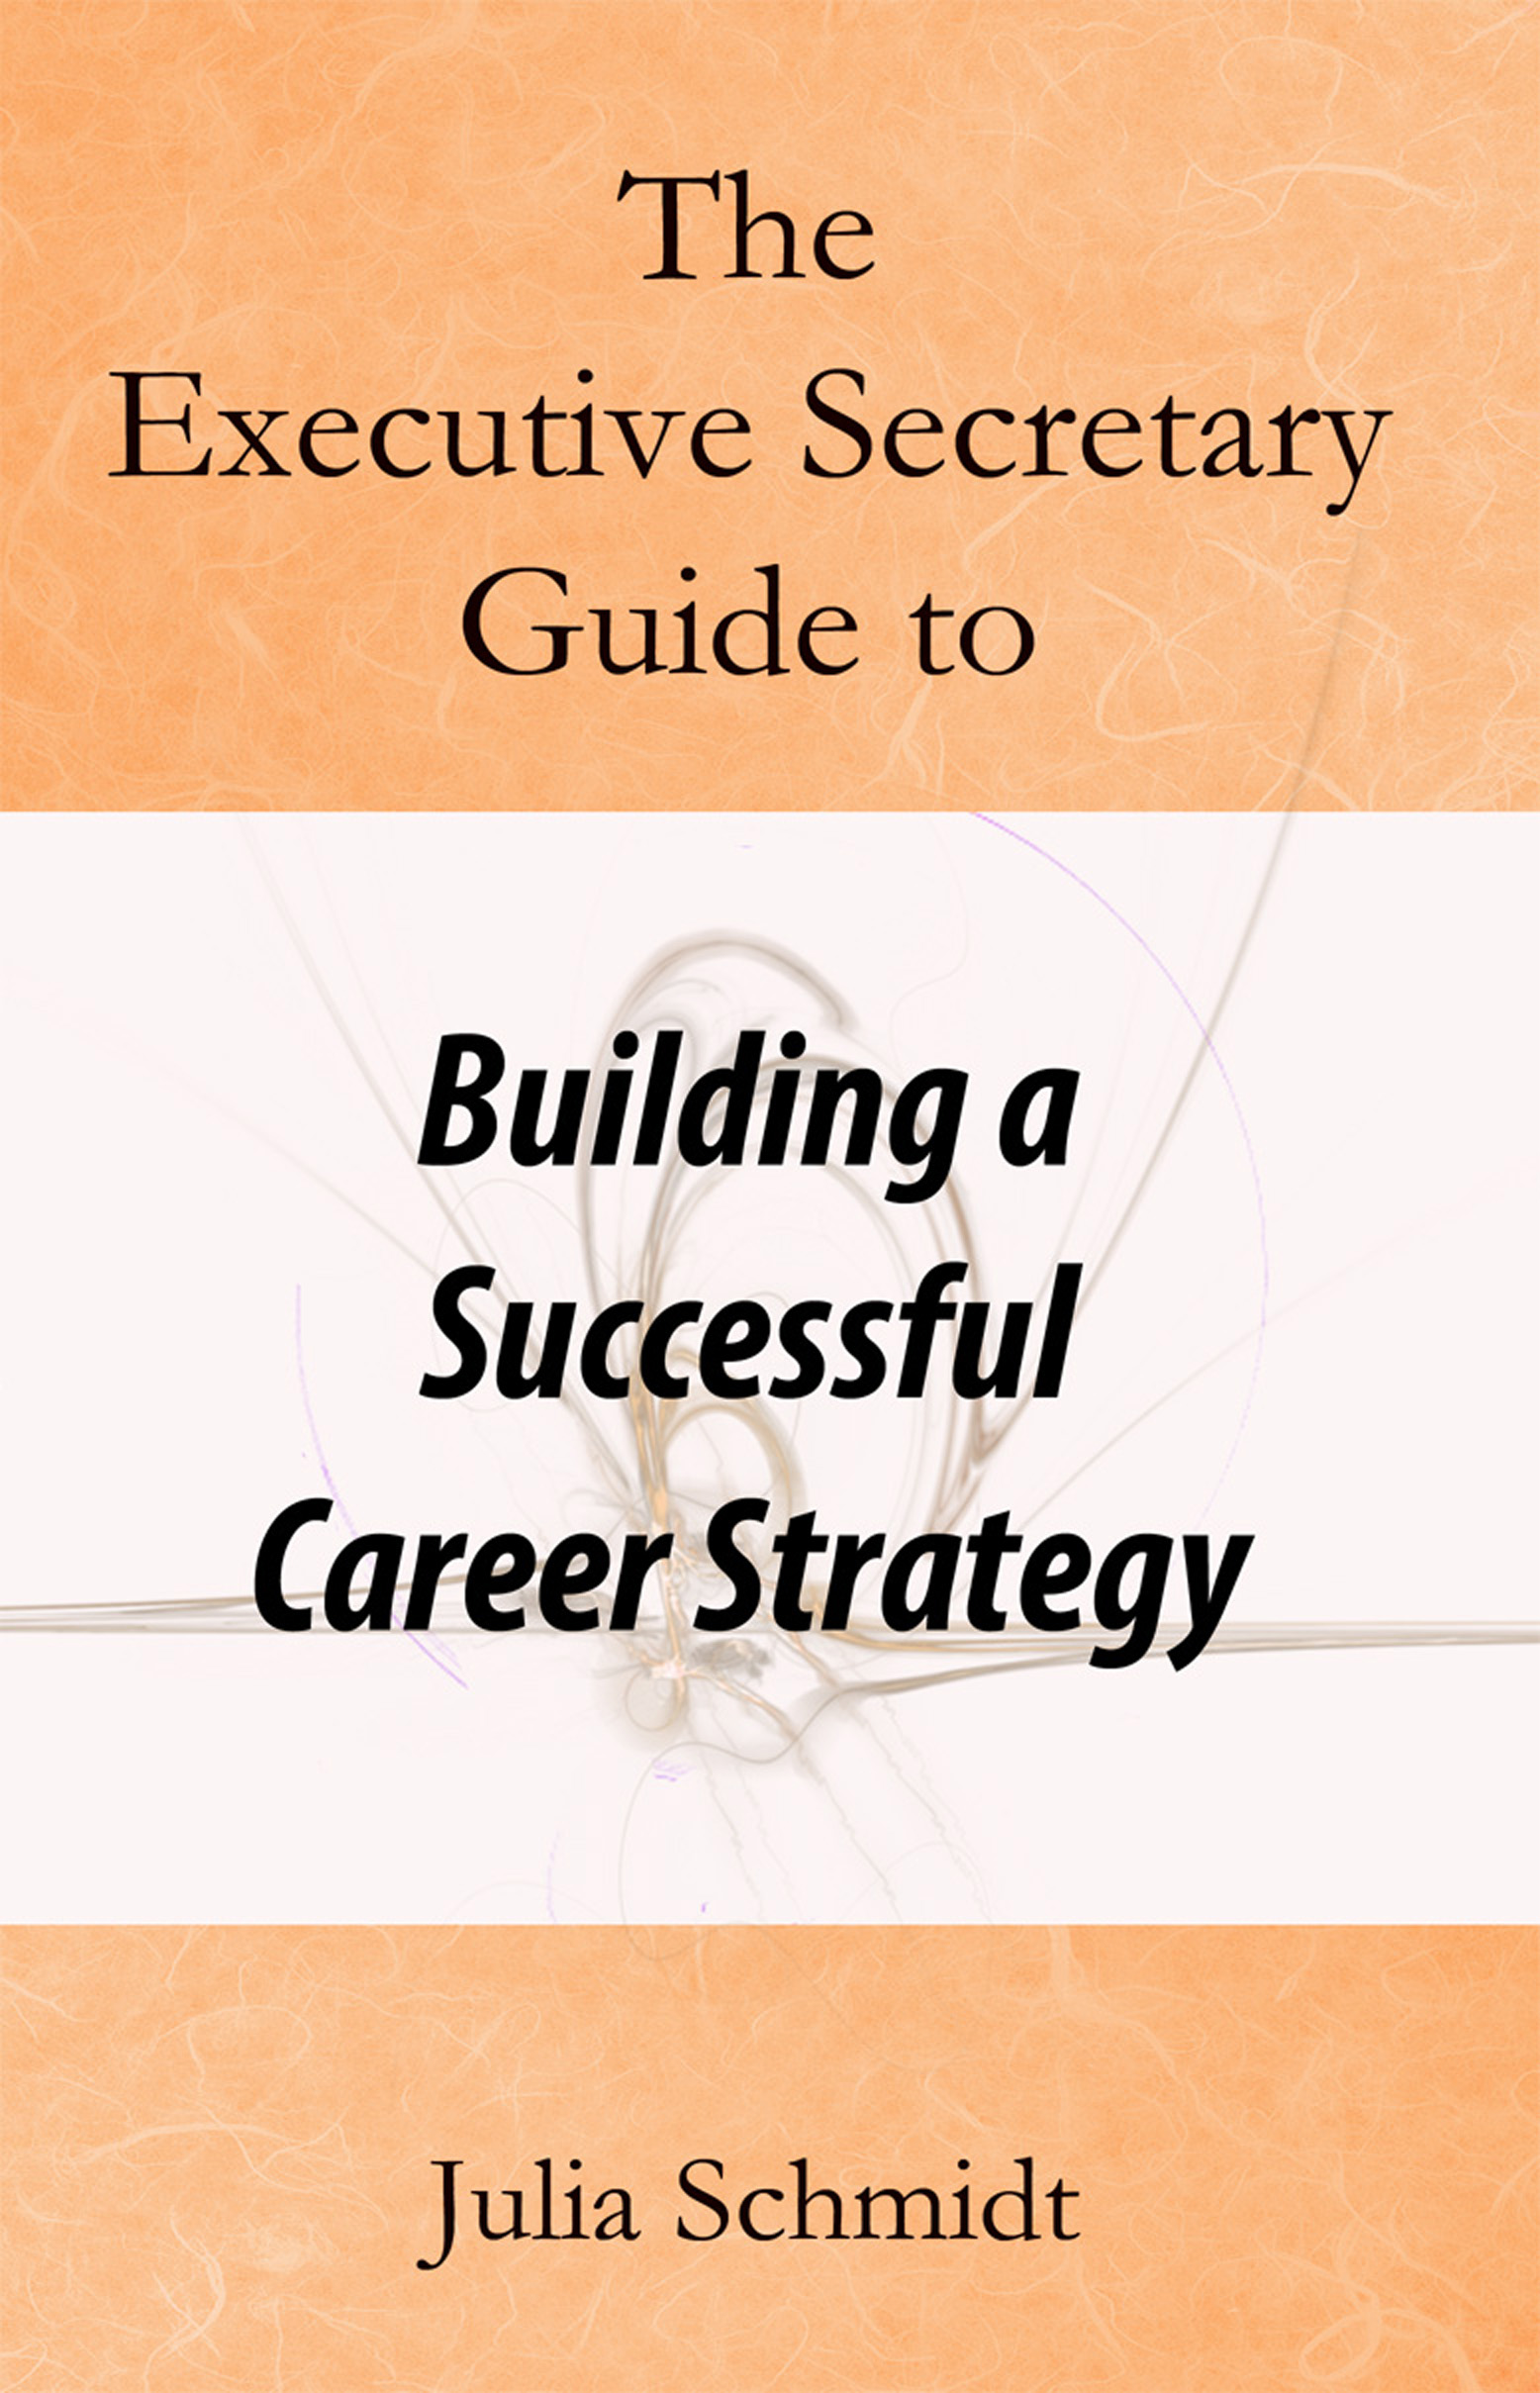 The Executive Secretary Guide to Building a Successful Career Strategy